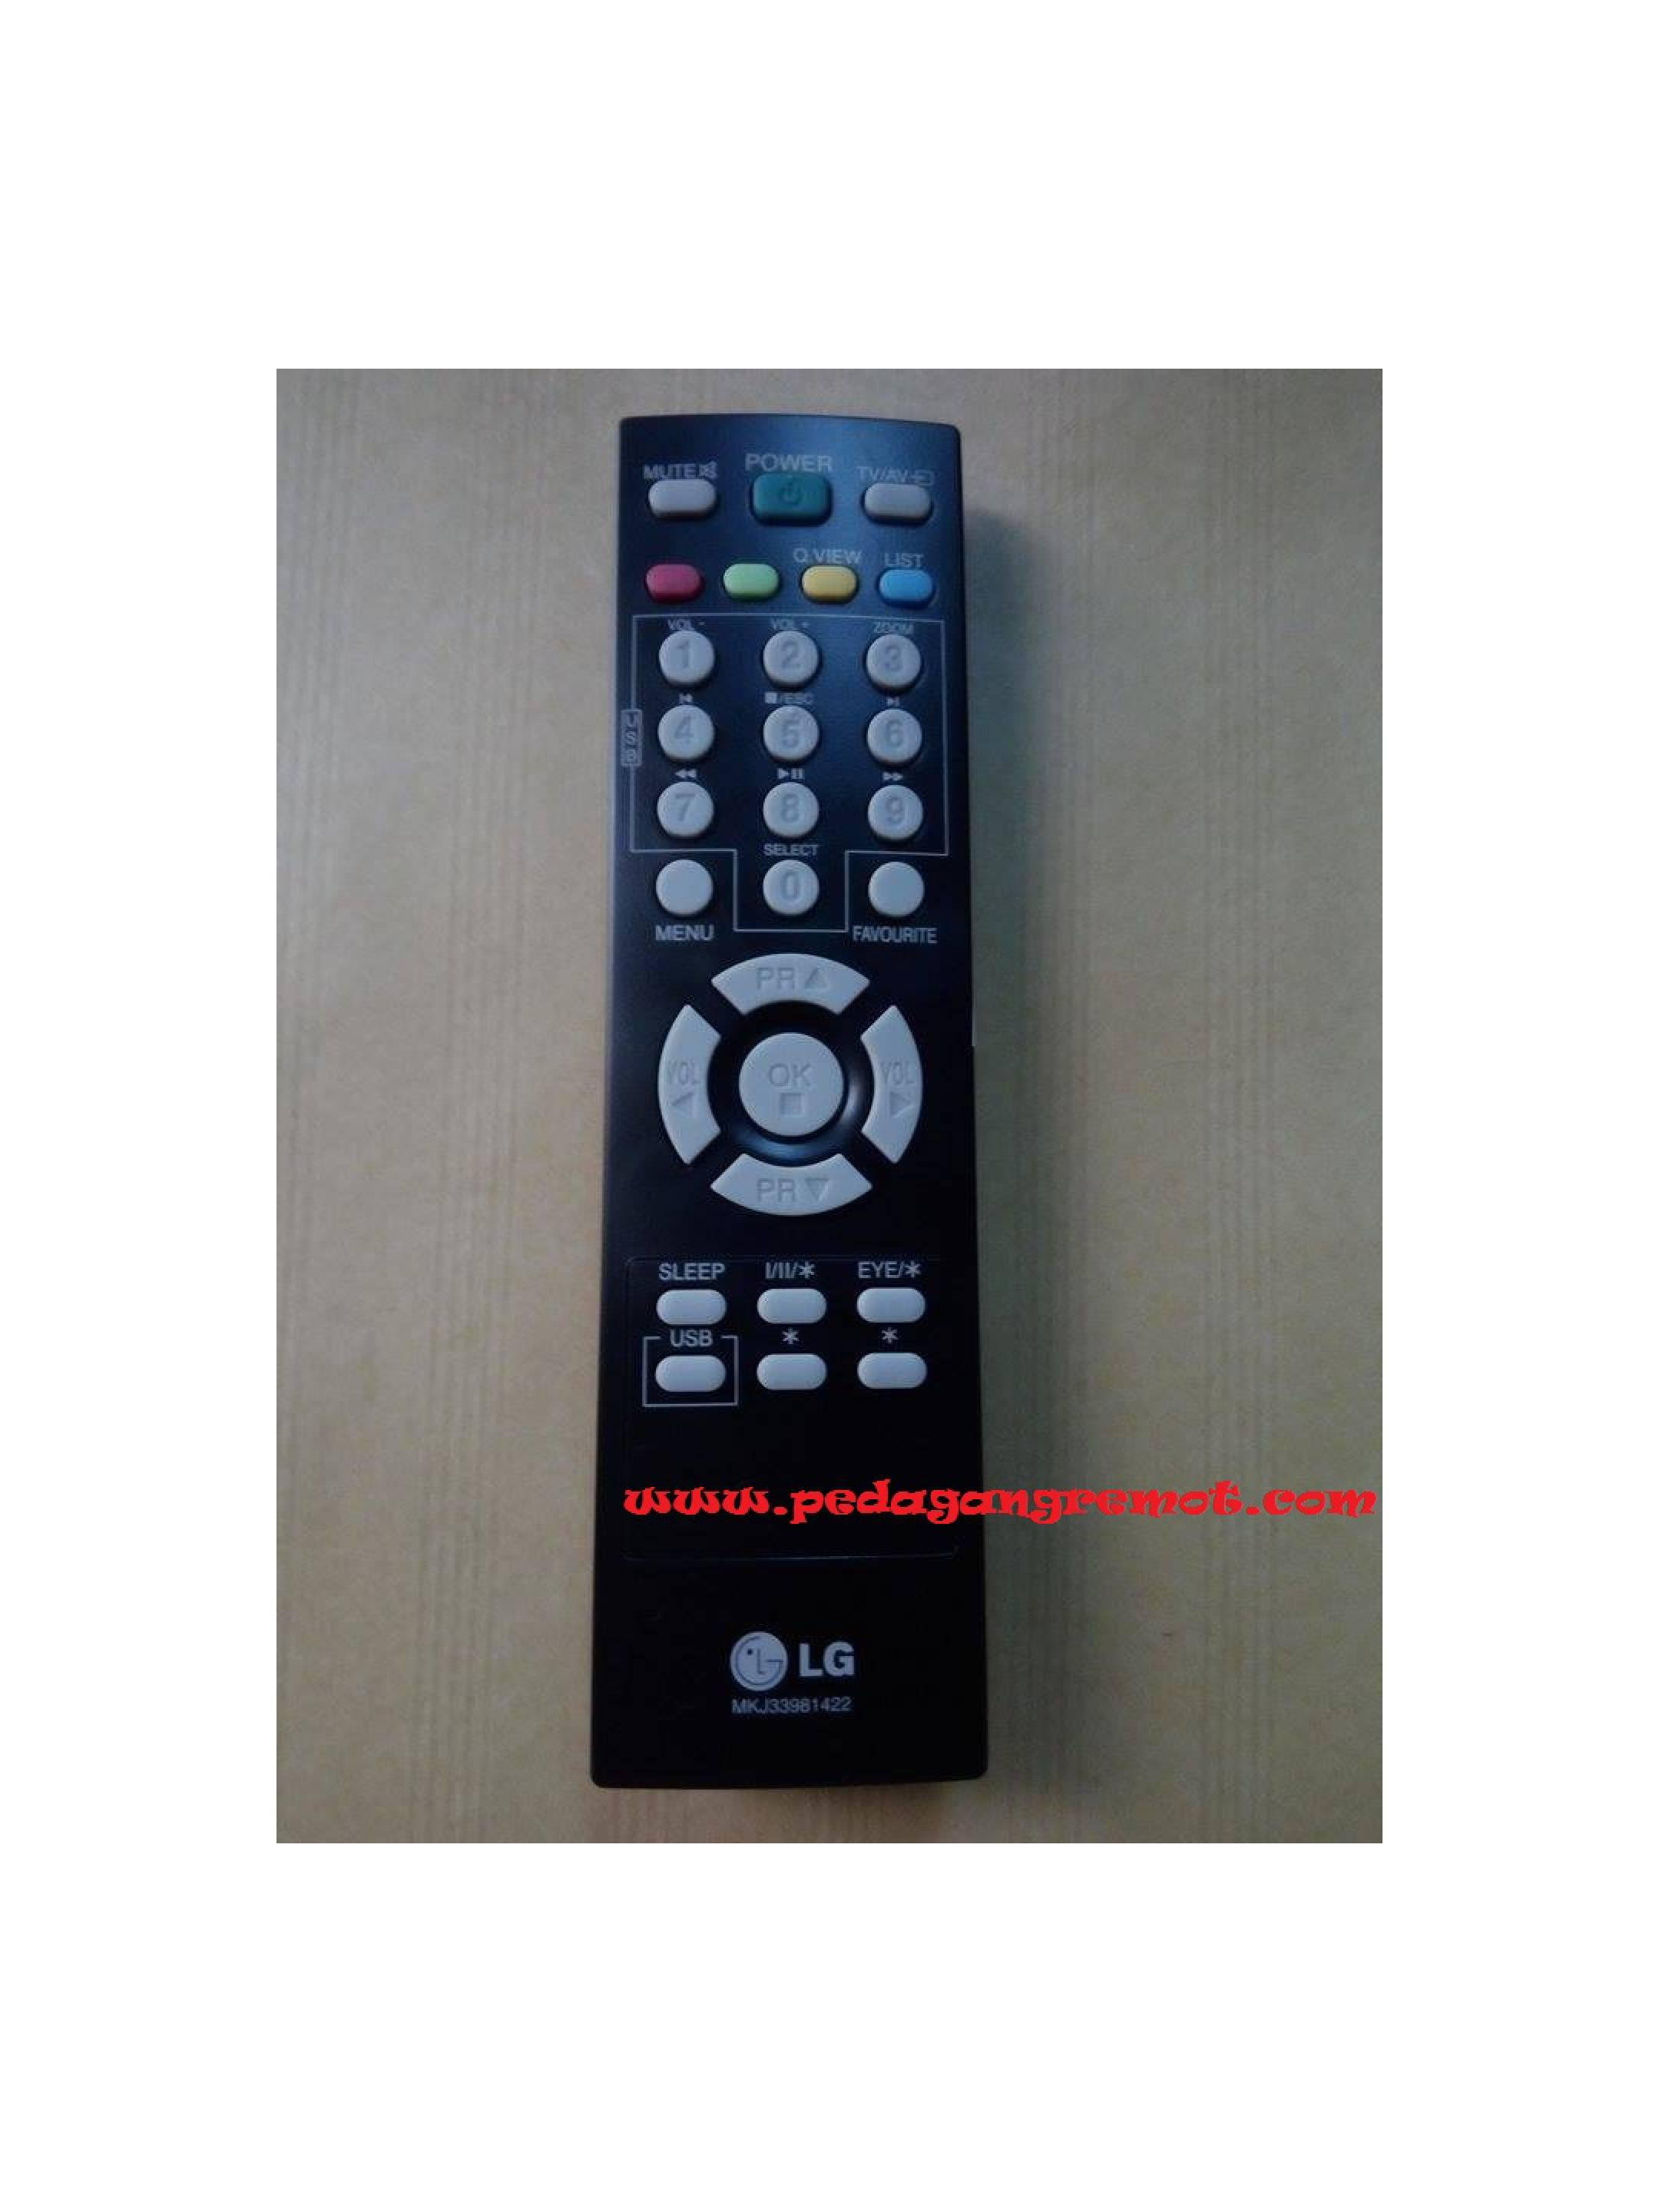 Remot/Remote TV LG Flat/LCD/LED Ori/Original MKJ33981422